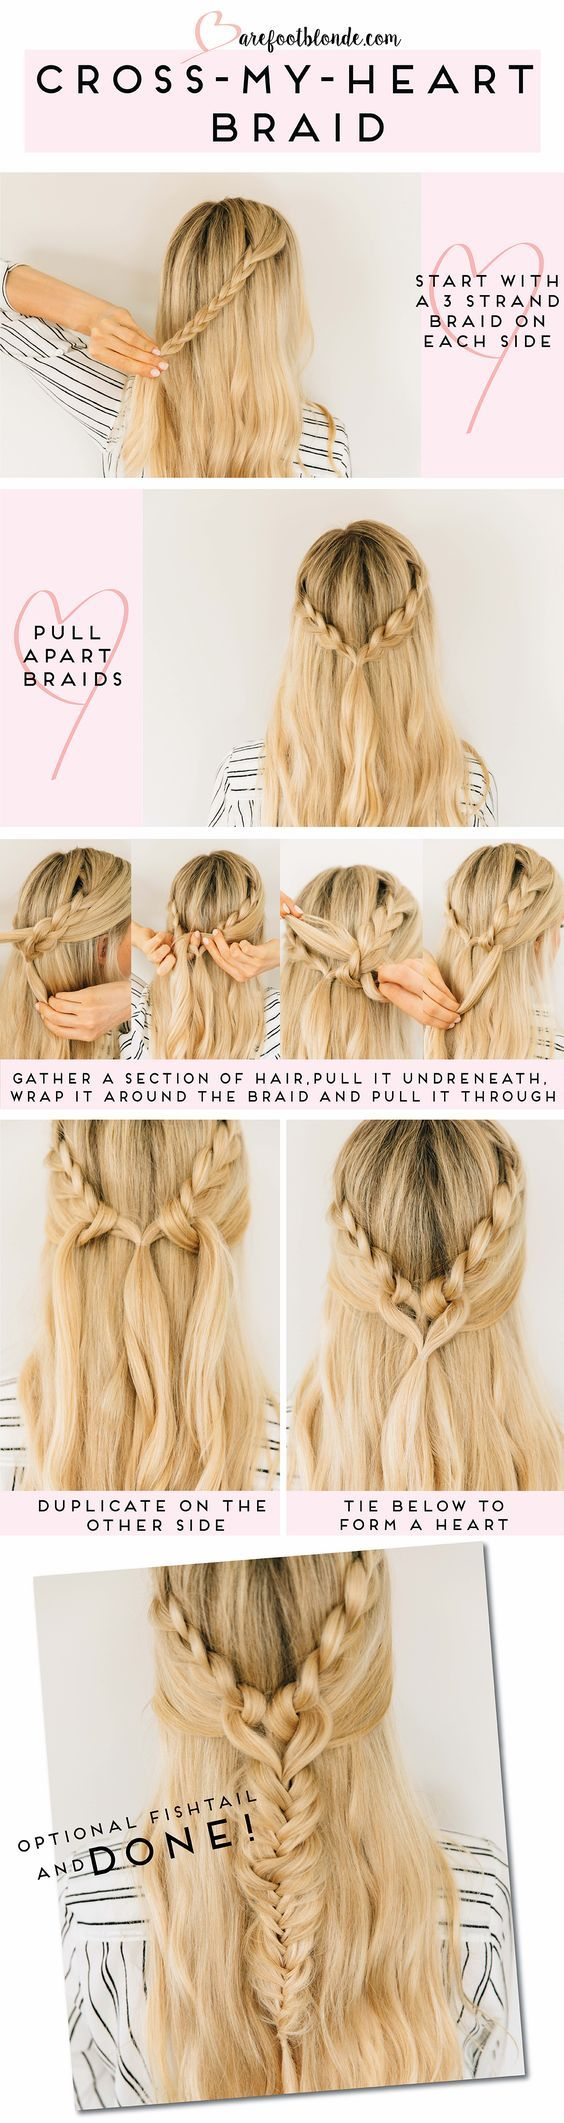 Superb 1000 Ideas About Easy Hairstyles On Pinterest Hairstyles Hair Hairstyle Inspiration Daily Dogsangcom